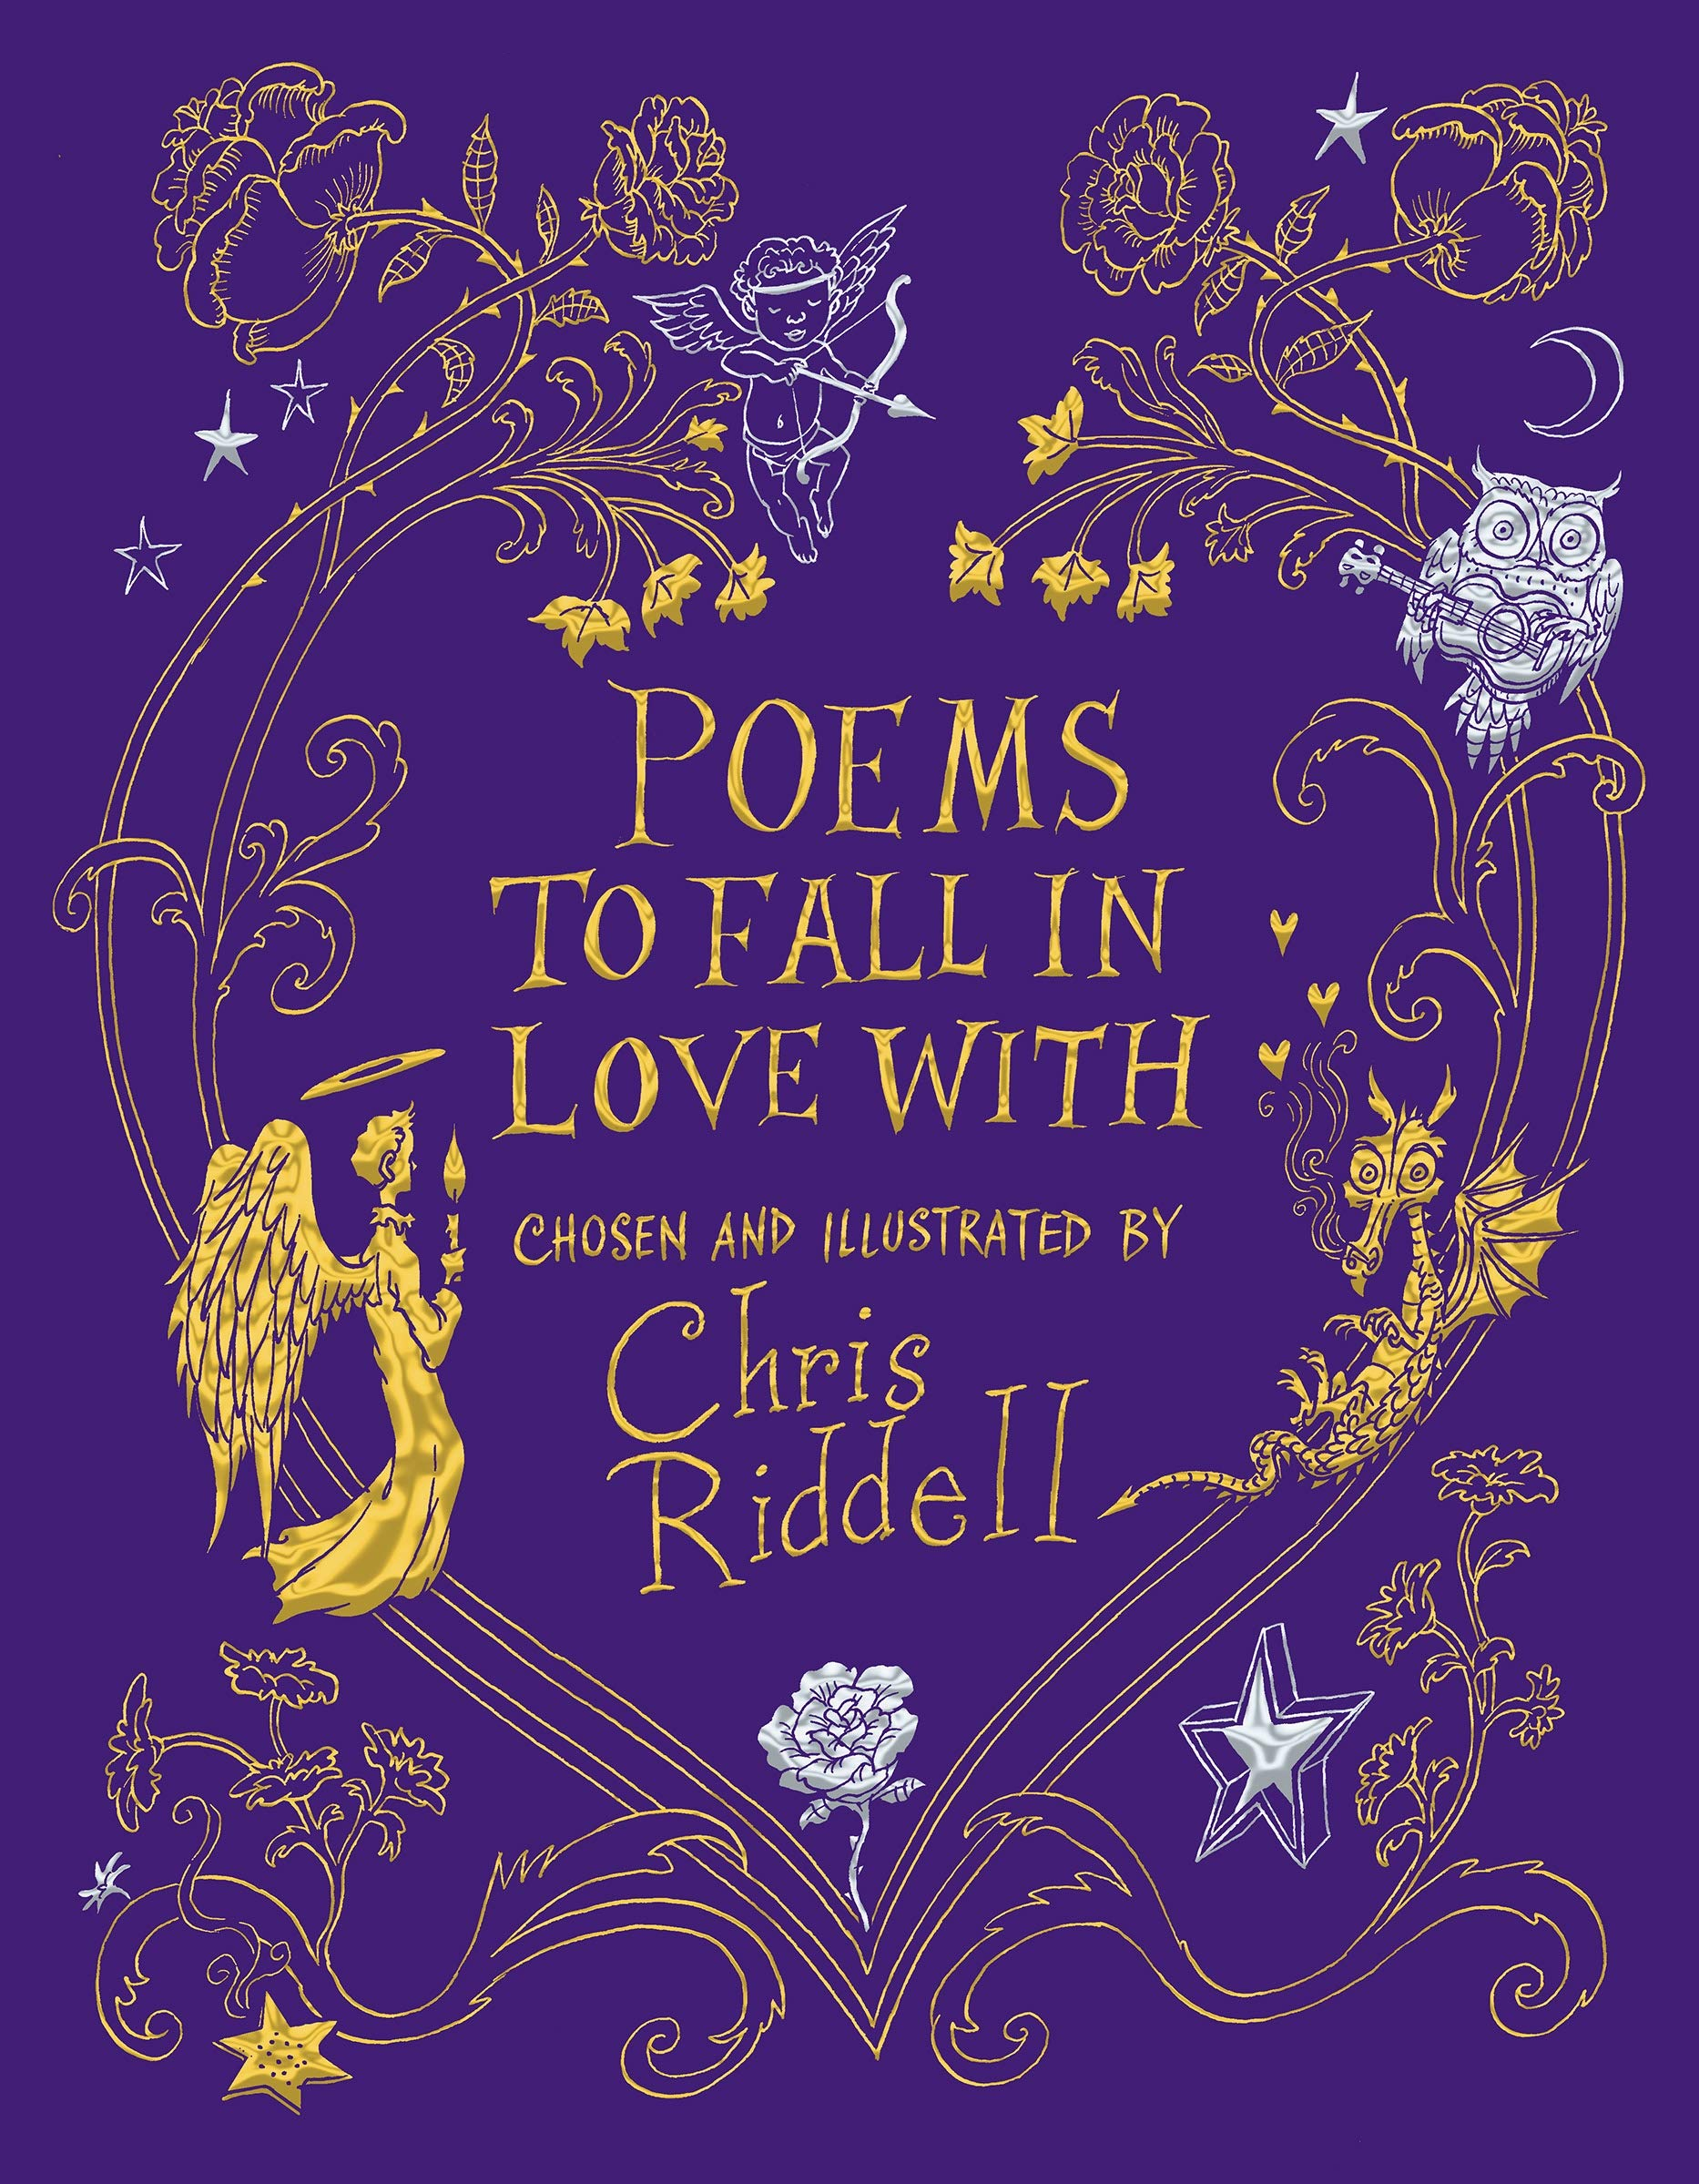 Jacket image for Chris Riddell's anthology of poetry 'Poems to Fall in Love With'